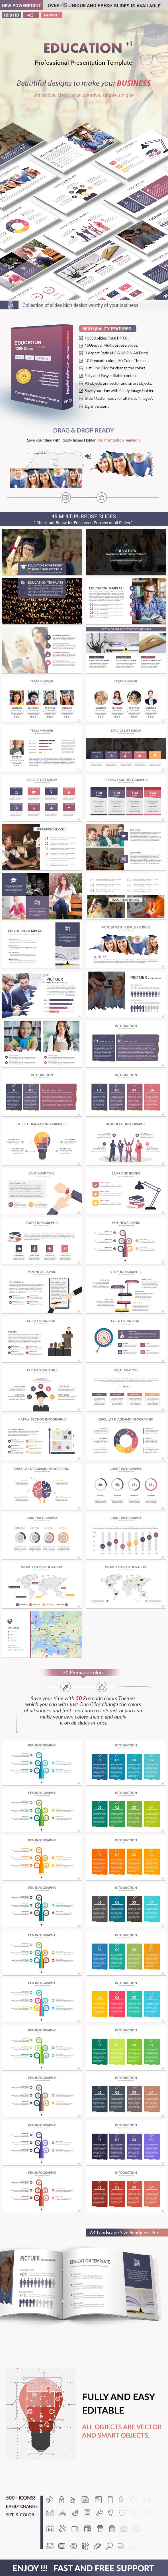 Education PowerPoint Presentation Template  Ideal PowerPoint to make academic presentations , clean, creative, simple, unique, scalable and multipurpose PowerPoint Template. All element easy to edit and you can easily change the color to match it with your personal or company brand, Save your time with 10Premade colors Themes which you can with Just One Click change the colors of all shapes and fonts and auto recolored .or you can make your own colors theme and apply it on all slides at…